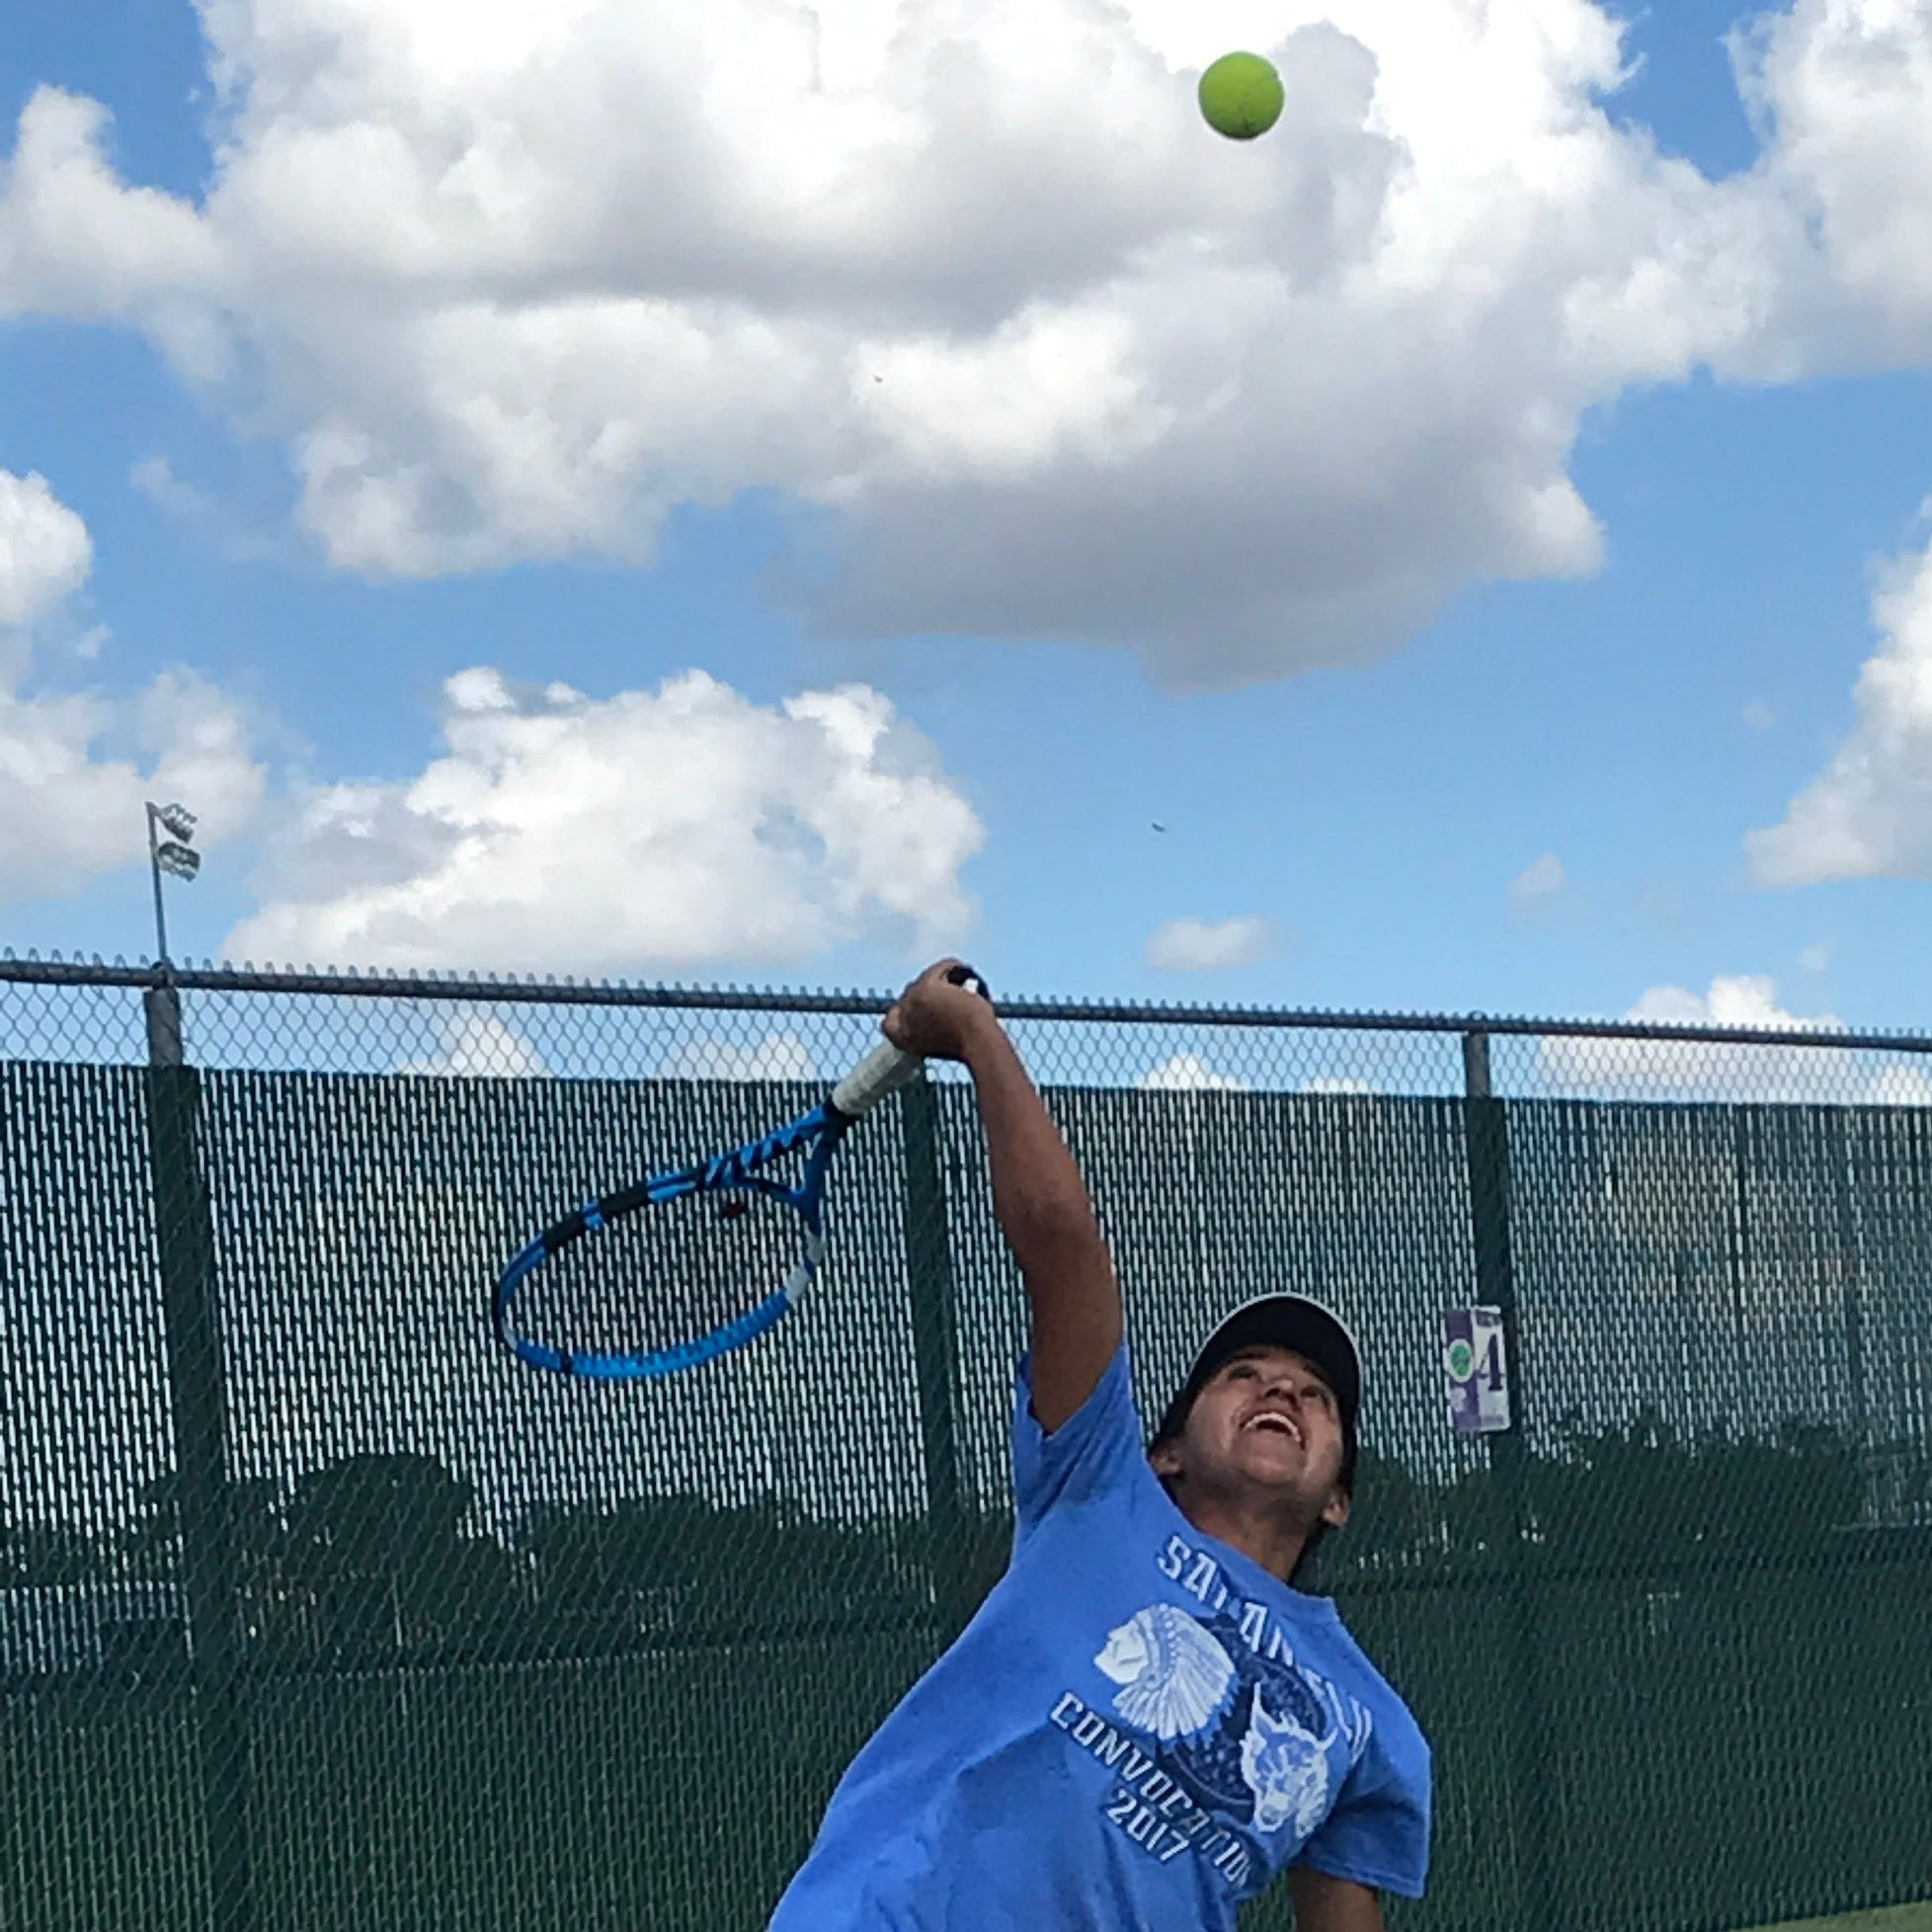 Lake View's historic tennis season reaches playoff chapter